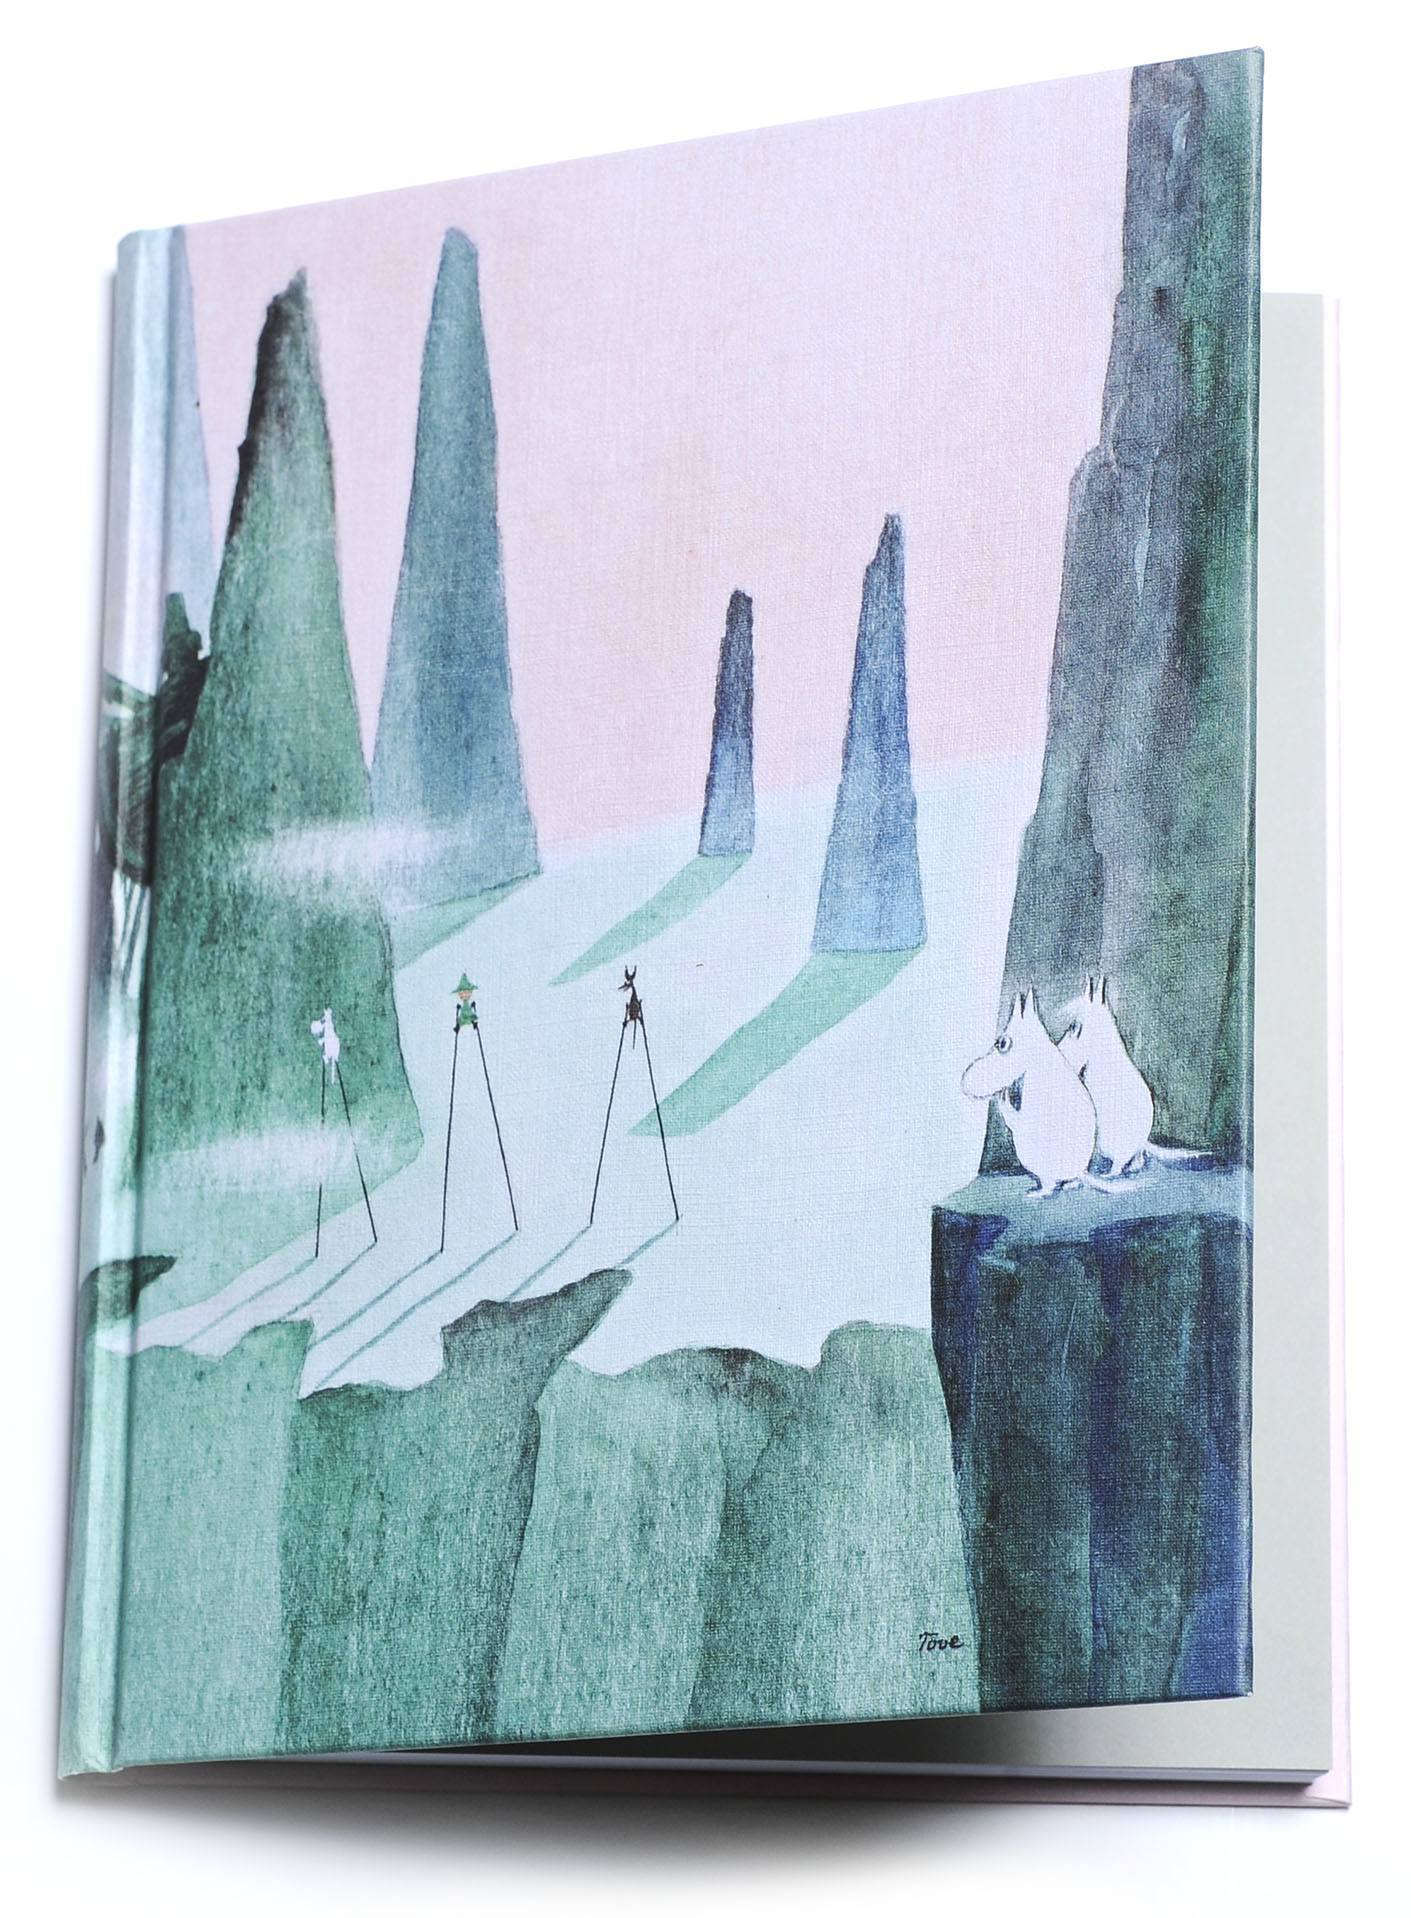 Putinki Hardcover Notebook Comet in Moominland